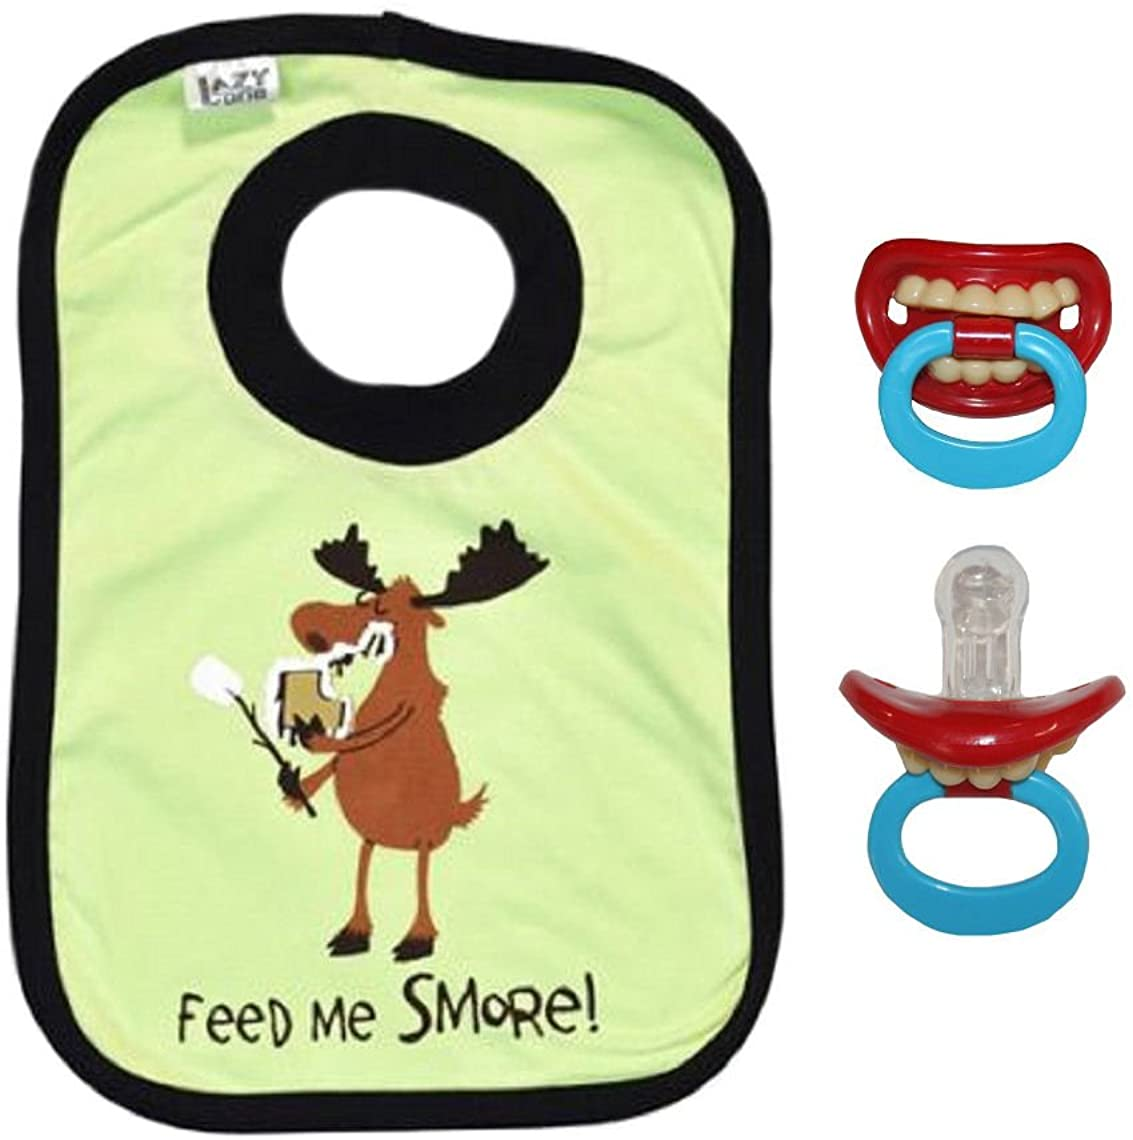 Feed Me Smore! Comical Pull-Over Baby Bib & Comical Pacifier Gift Set